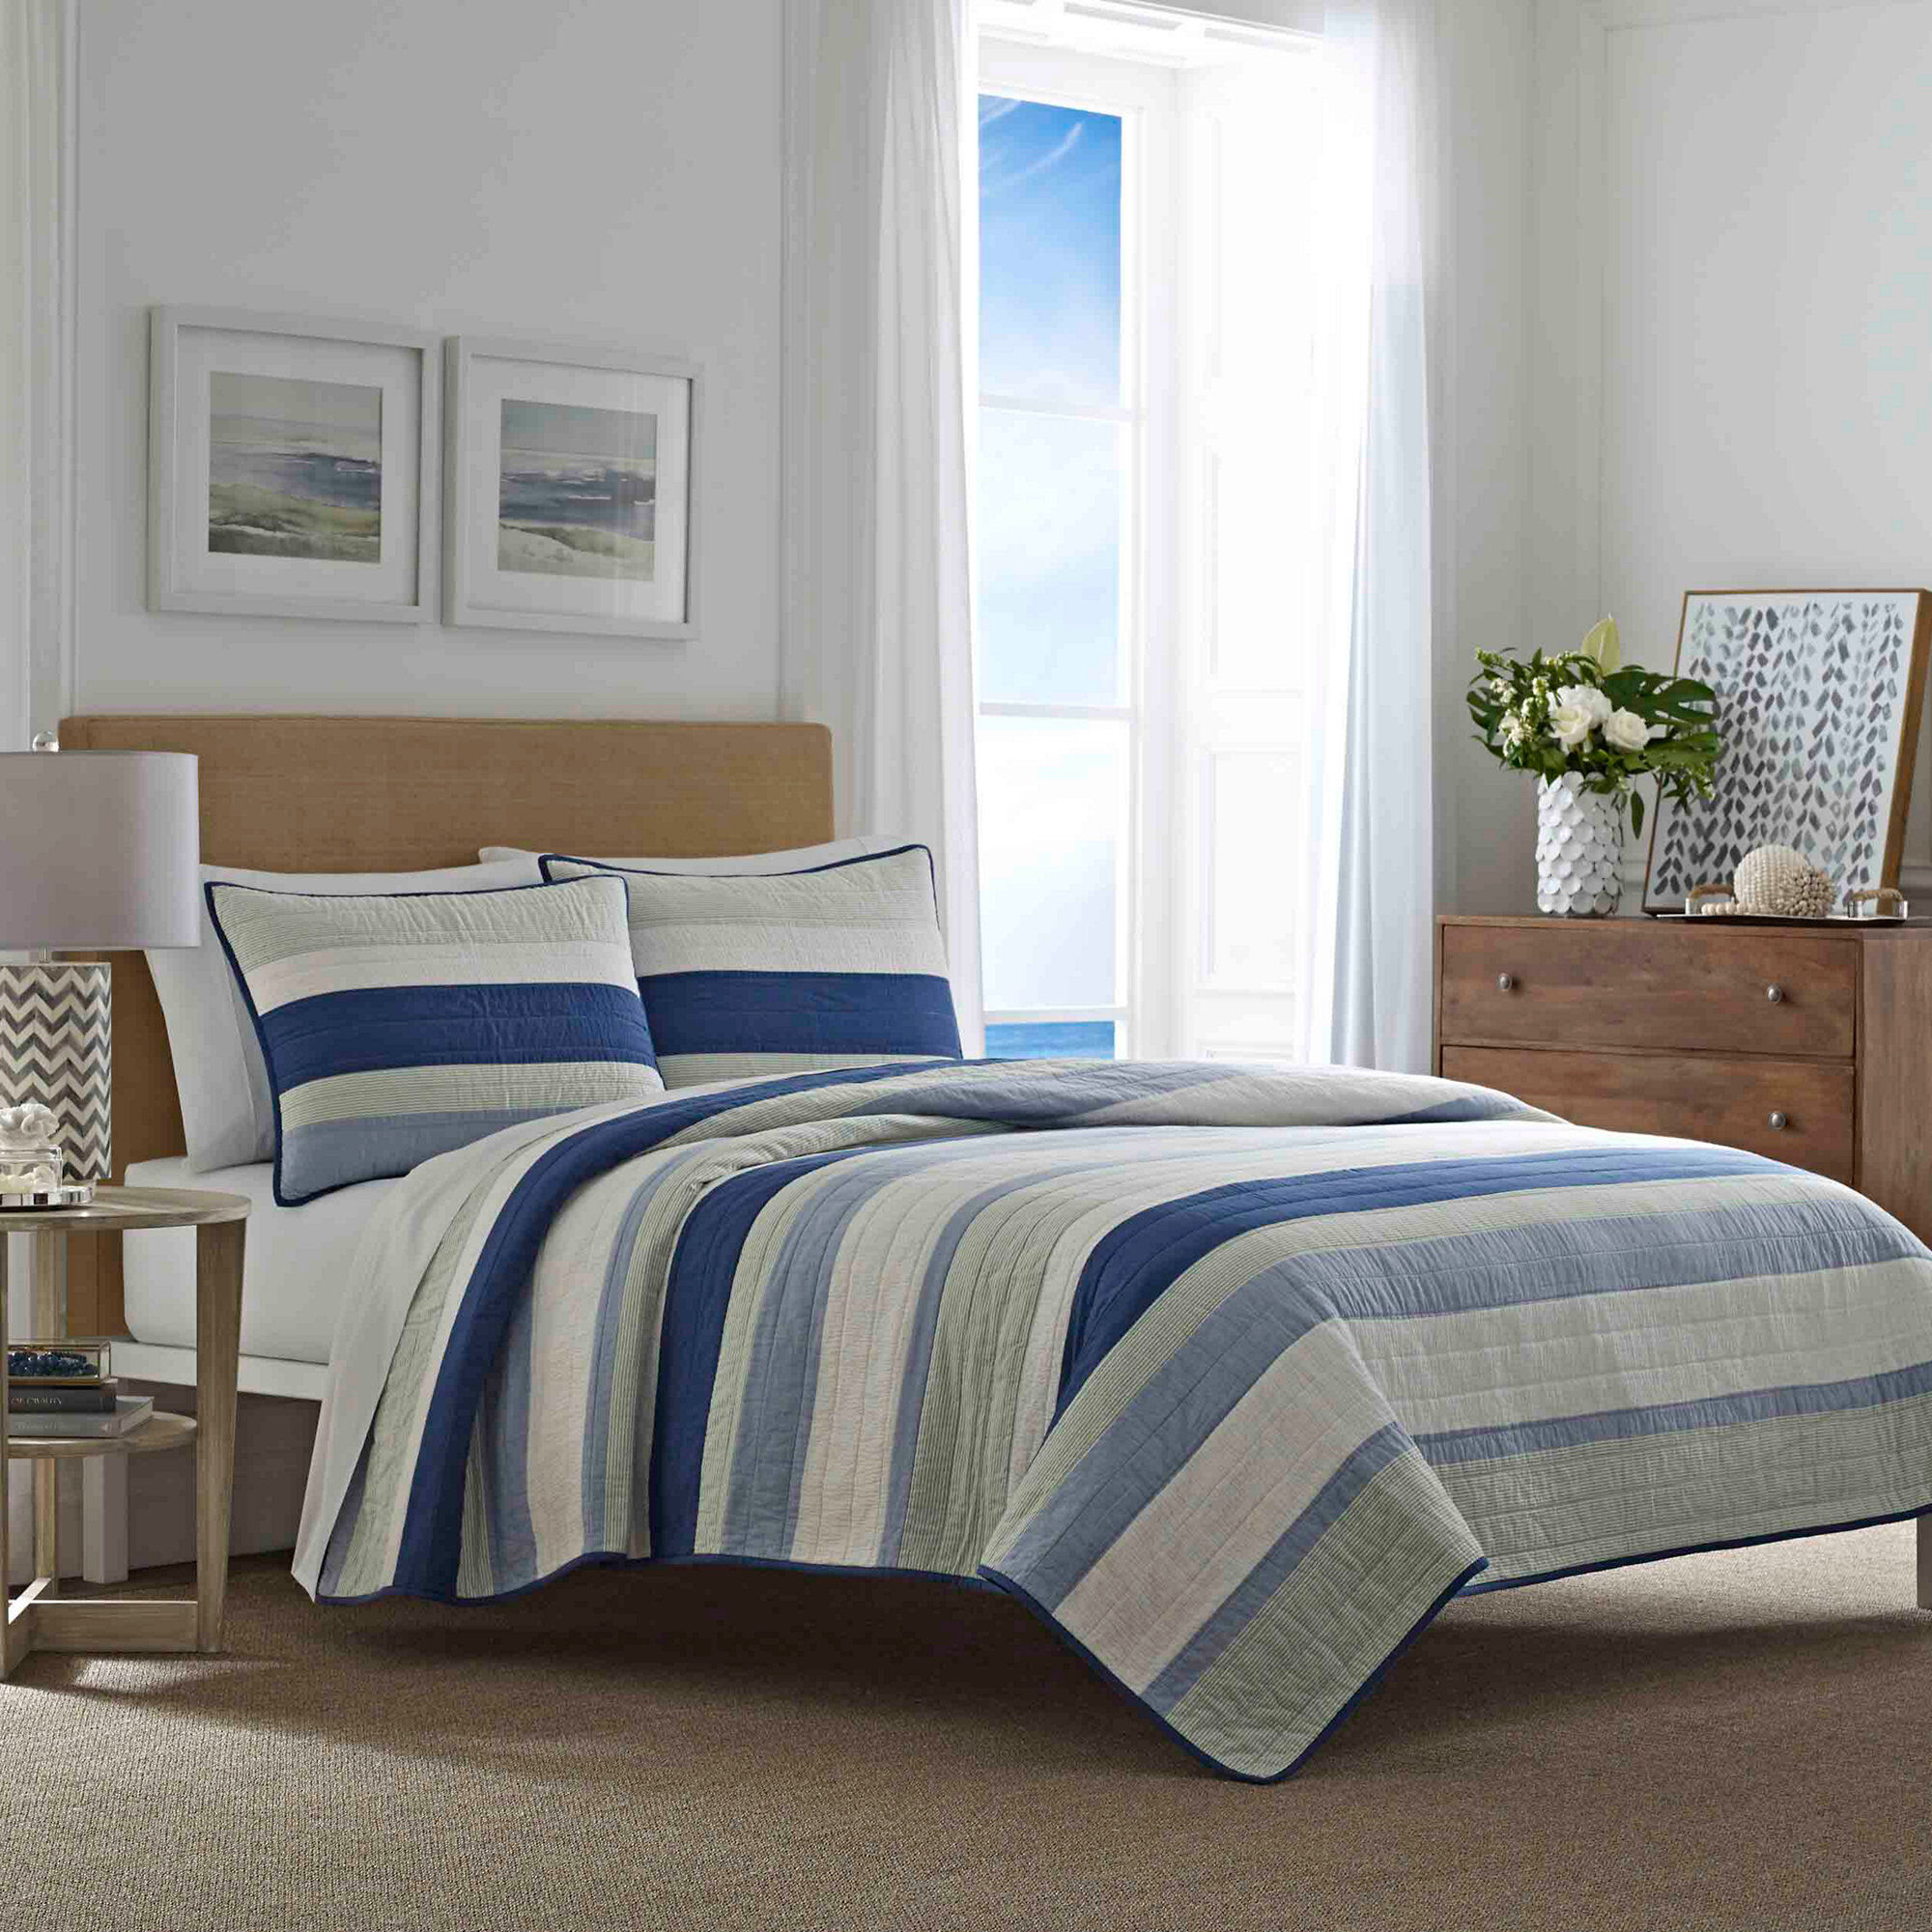 Home & Garden The Cheapest Price ***sale*** New Essentail Homes Full/queen Quilt